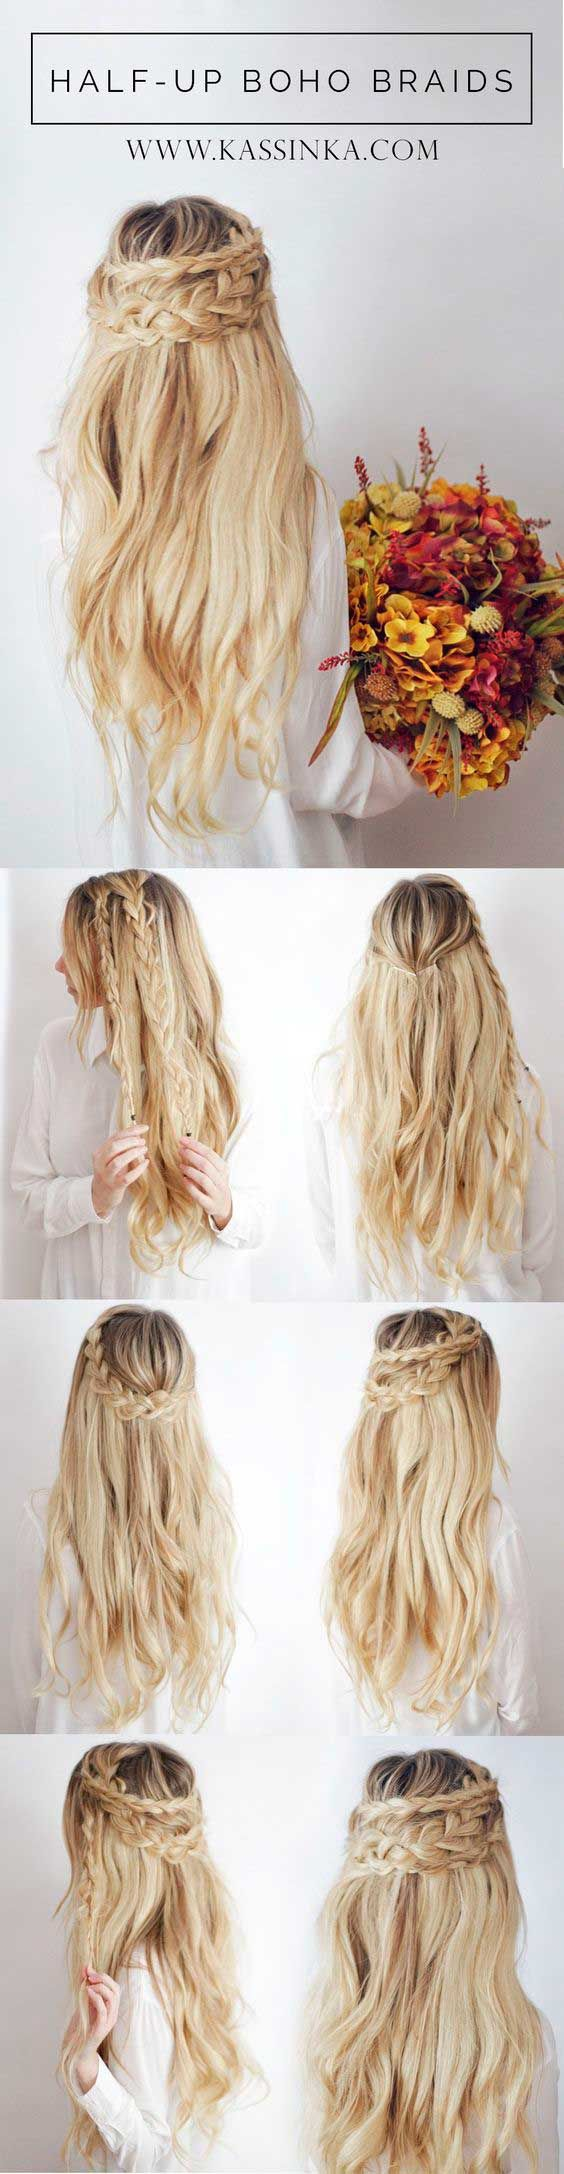 Half Up Half Down Hairdo For Prom Promhairdo Hairdo Hairstyles Hairstyleideas Promhairstyles Promhairstylesfor Hair Styles Long Hair Styles Hair Tutorial